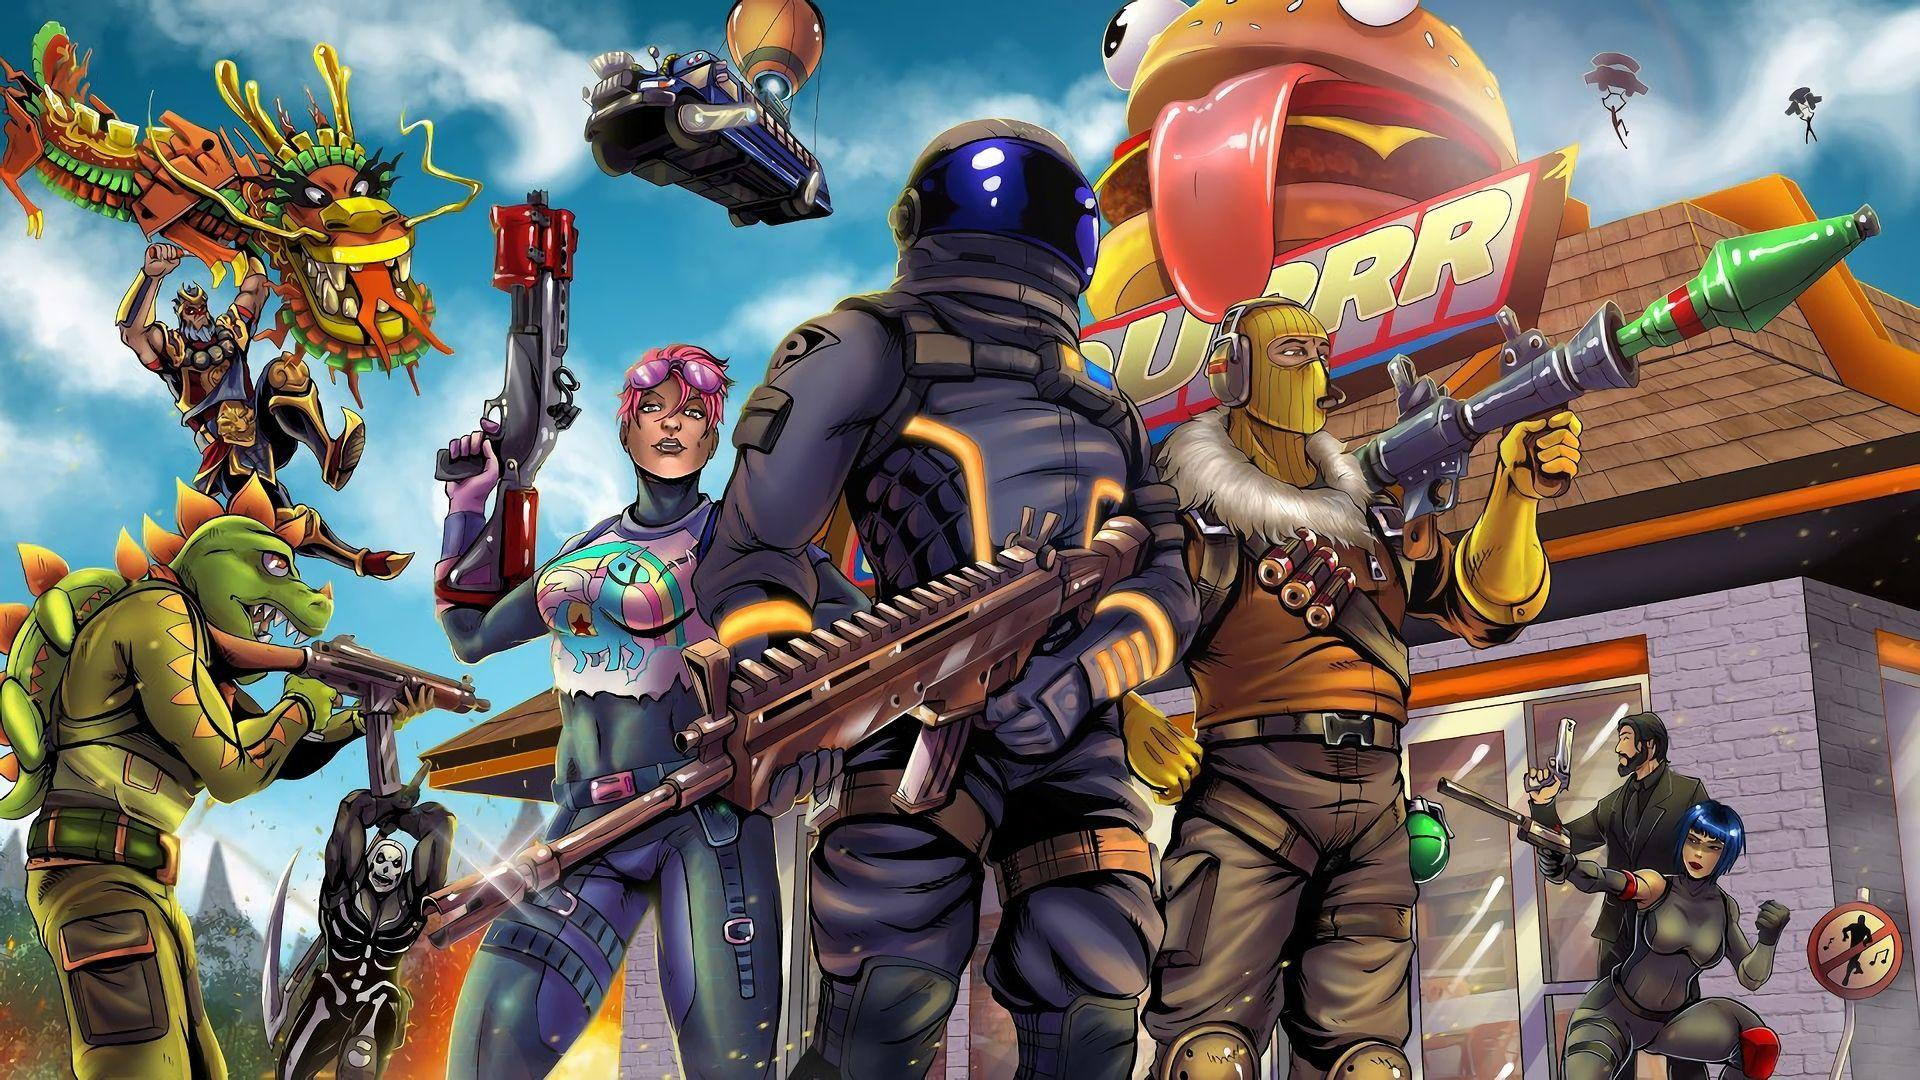 1920x1080 HD Wallpaper of Fortnite Battle Royale Video Game Art Dark ...